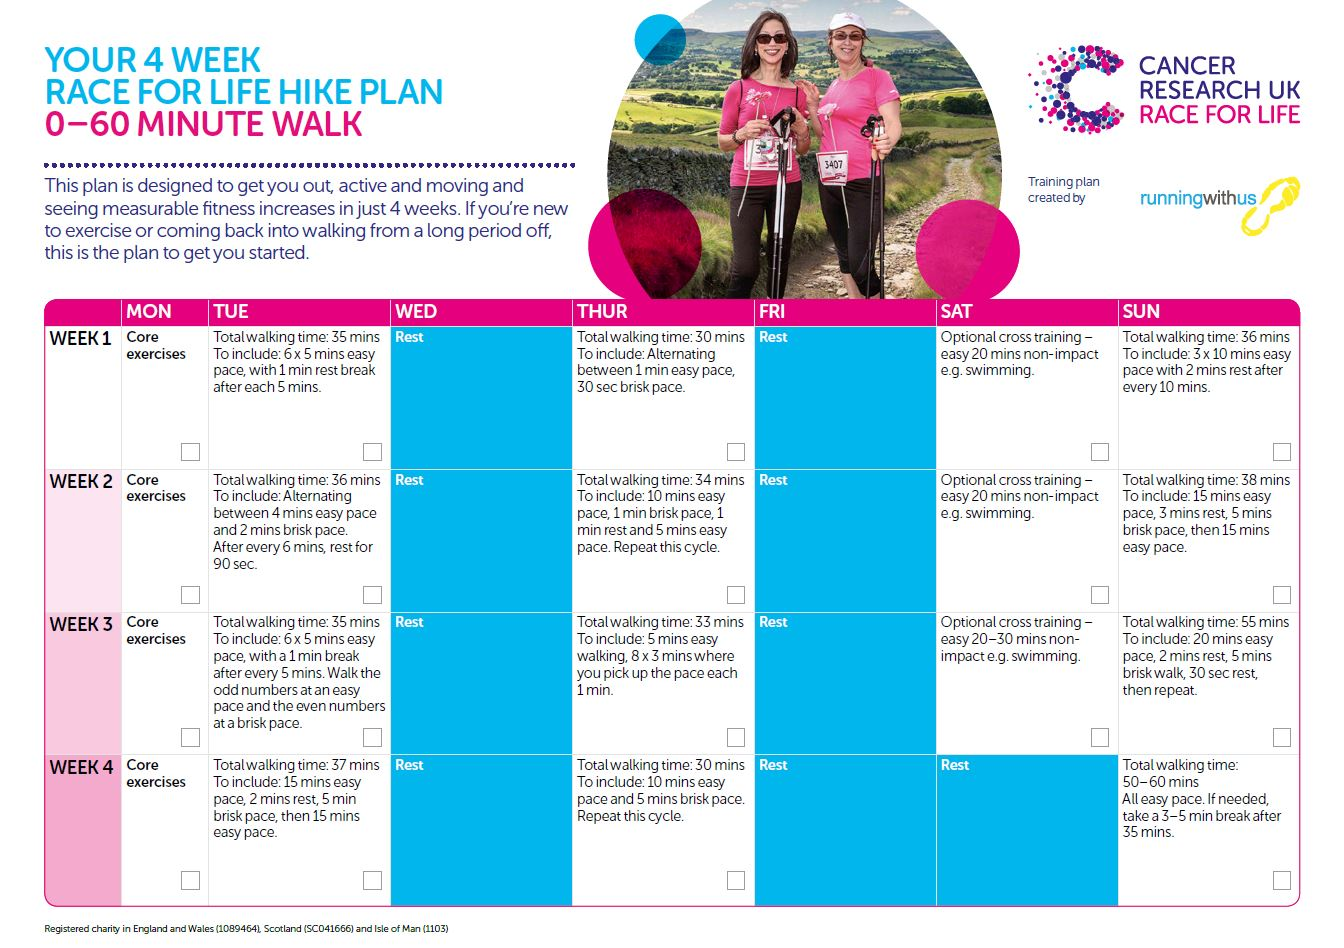 Race for Life Hike - 0-60 minute plan